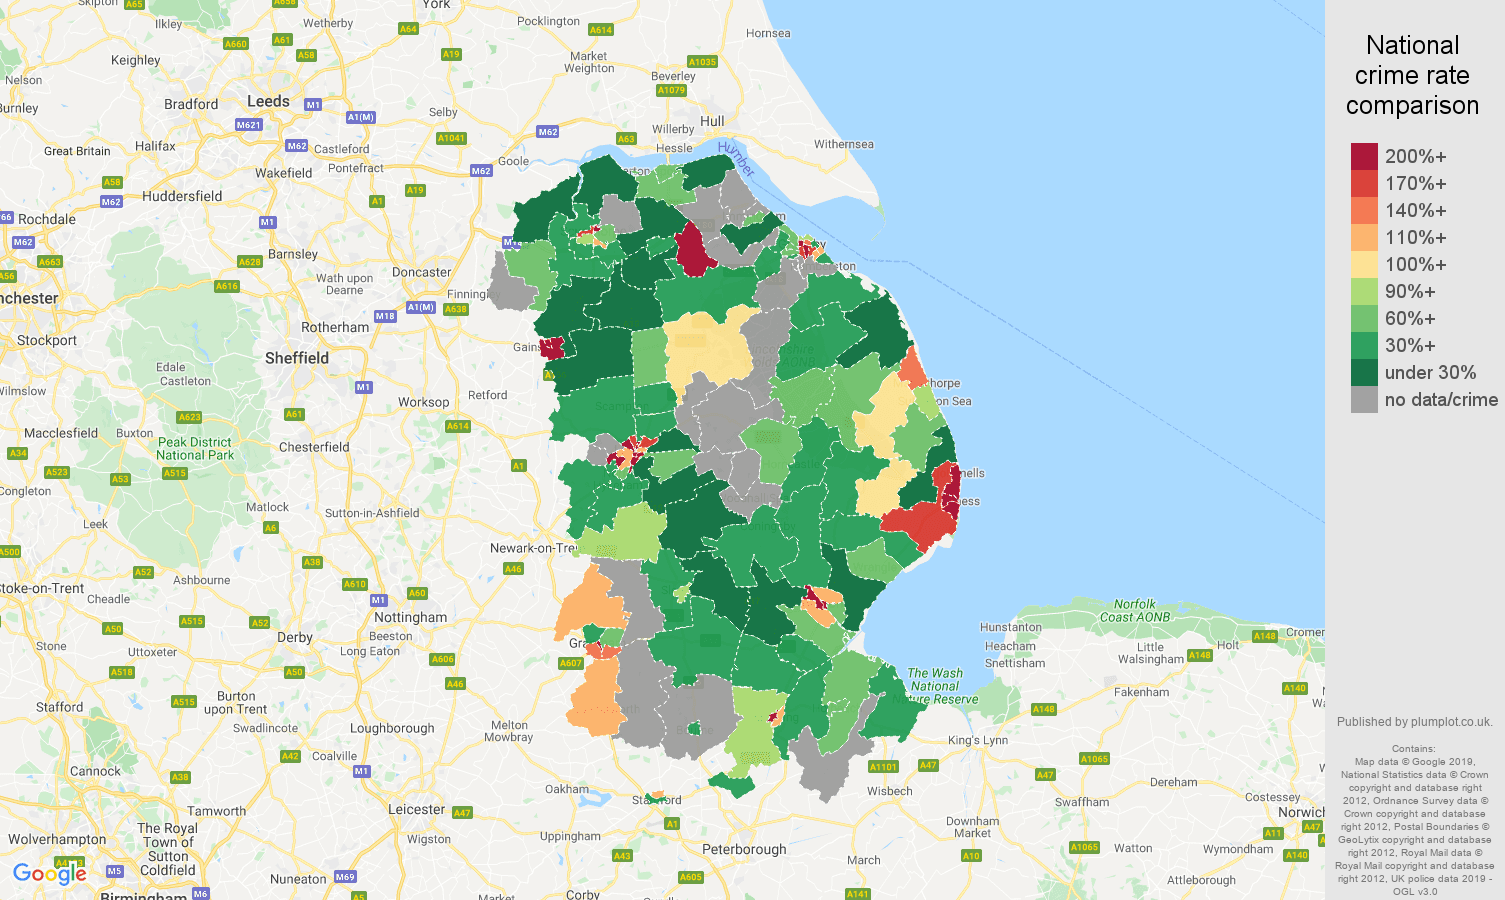 Lincolnshire possession of weapons crime rate comparison map